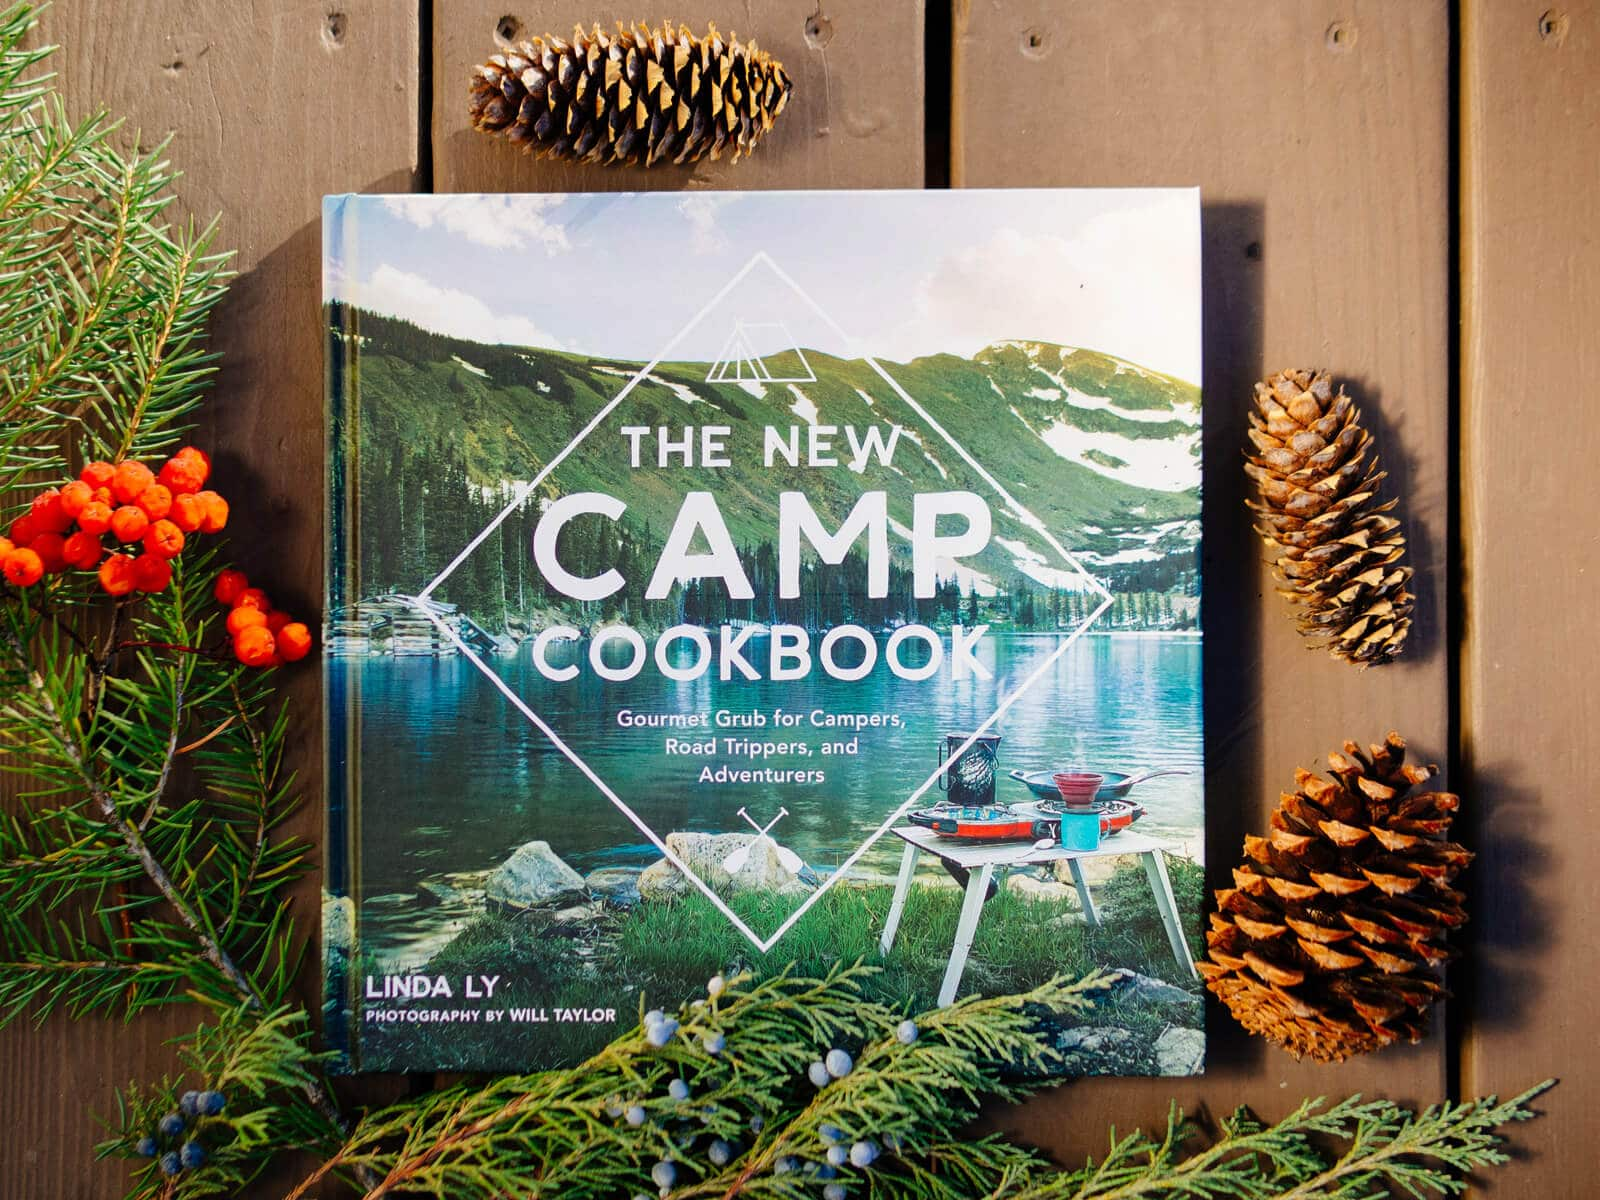 Soup and stew recipes in The New Camp Cookbook